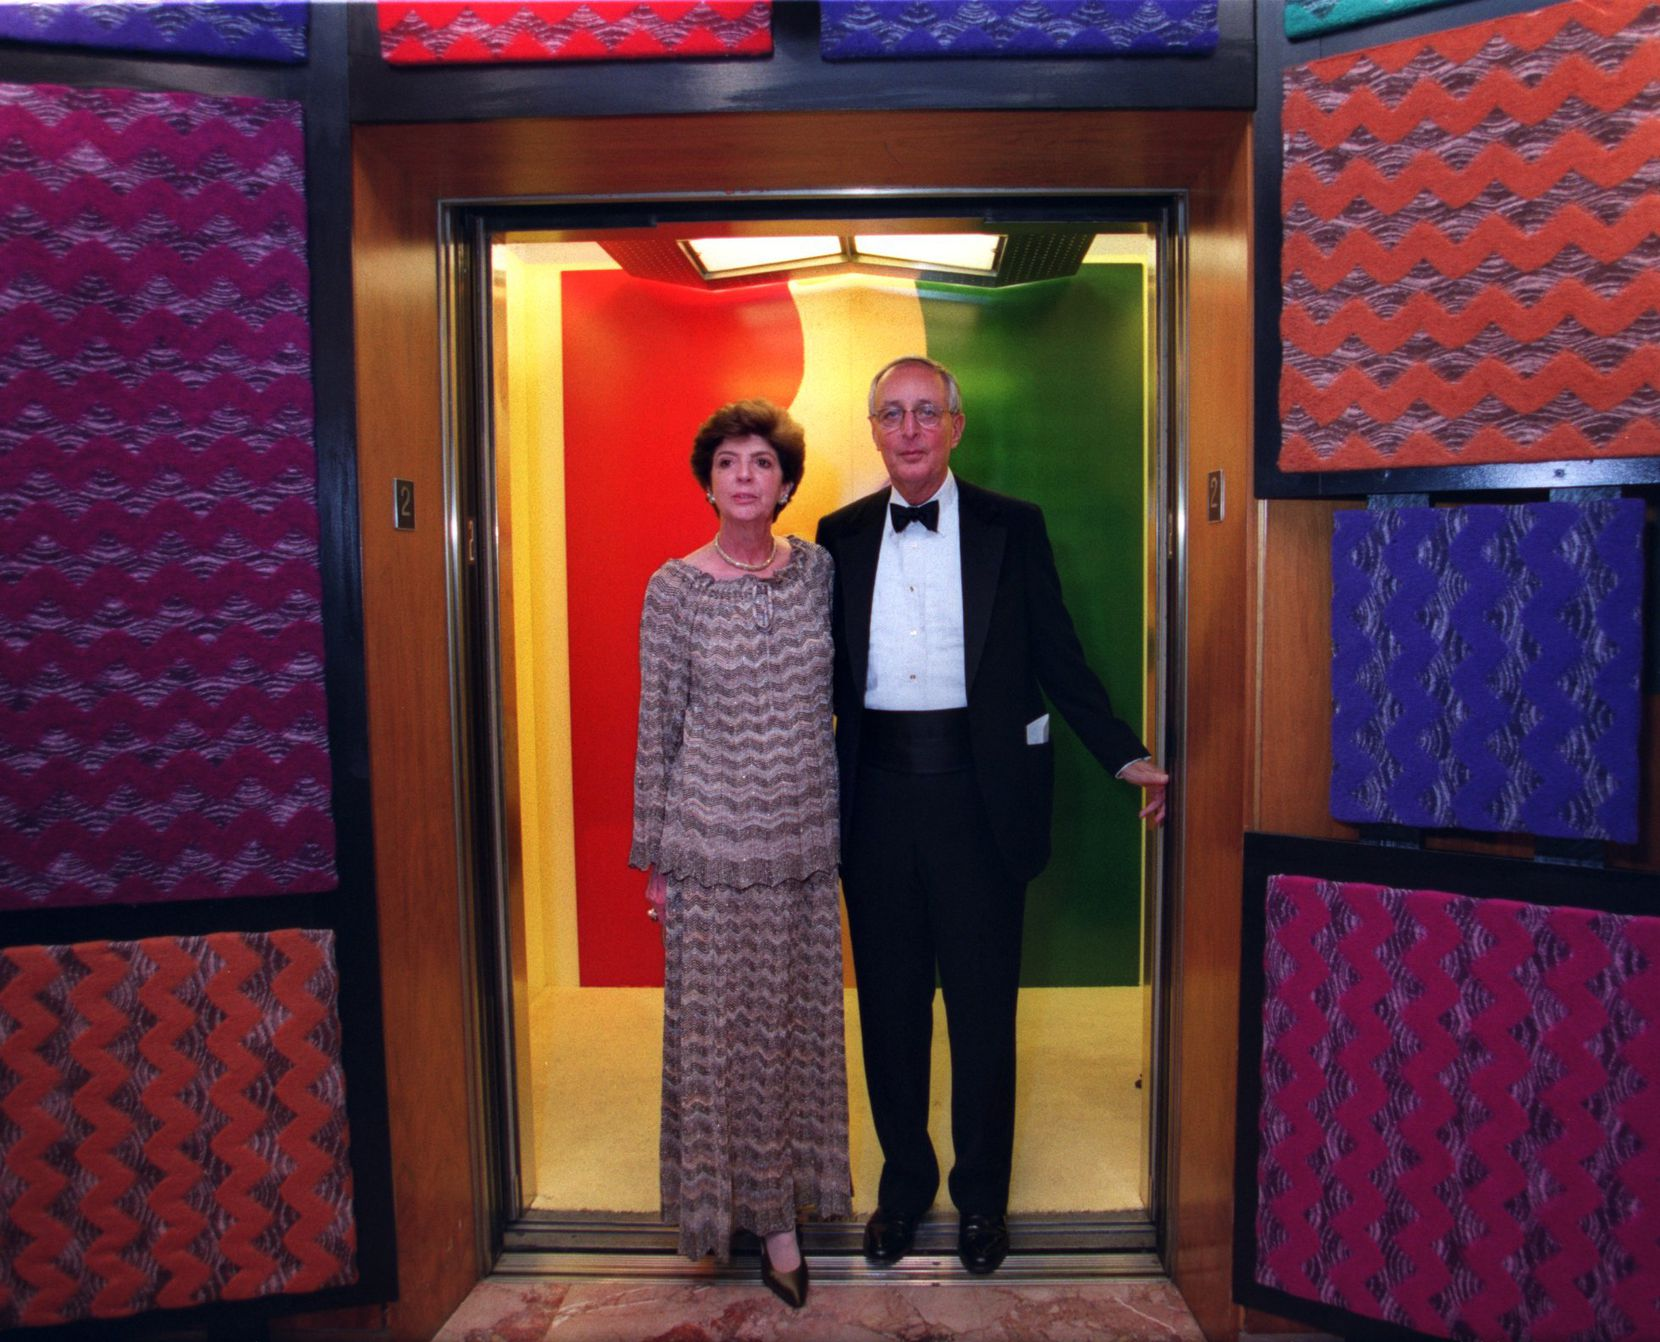 Carolyn and Roger Horchow at the Festa D'Italia opening gala at Neiman Marcus in 1999.